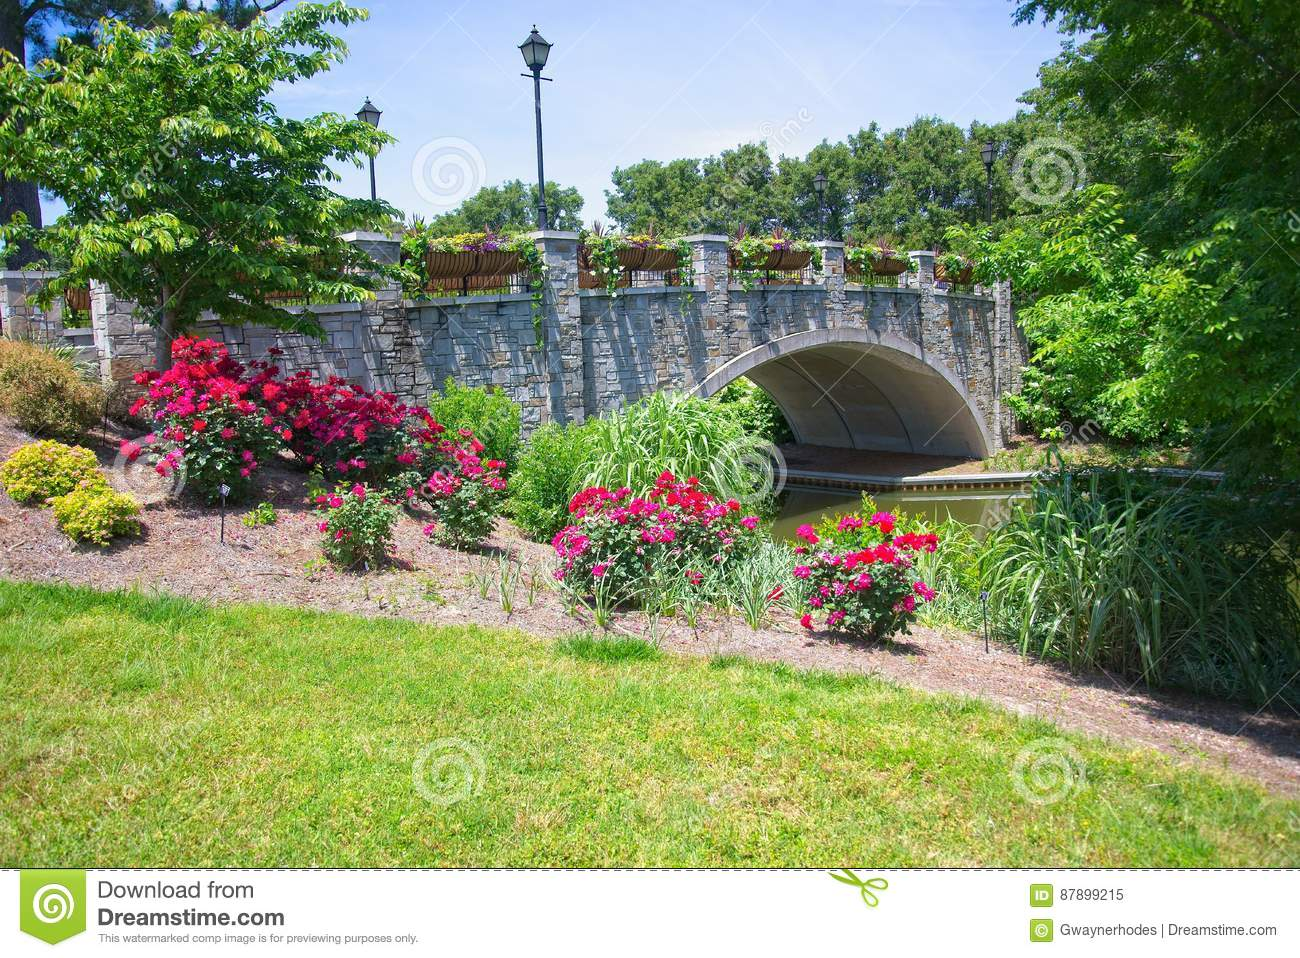 Flowers enclosing the stone bridge over the canal passing through the Norfolk Botanical Gardens.